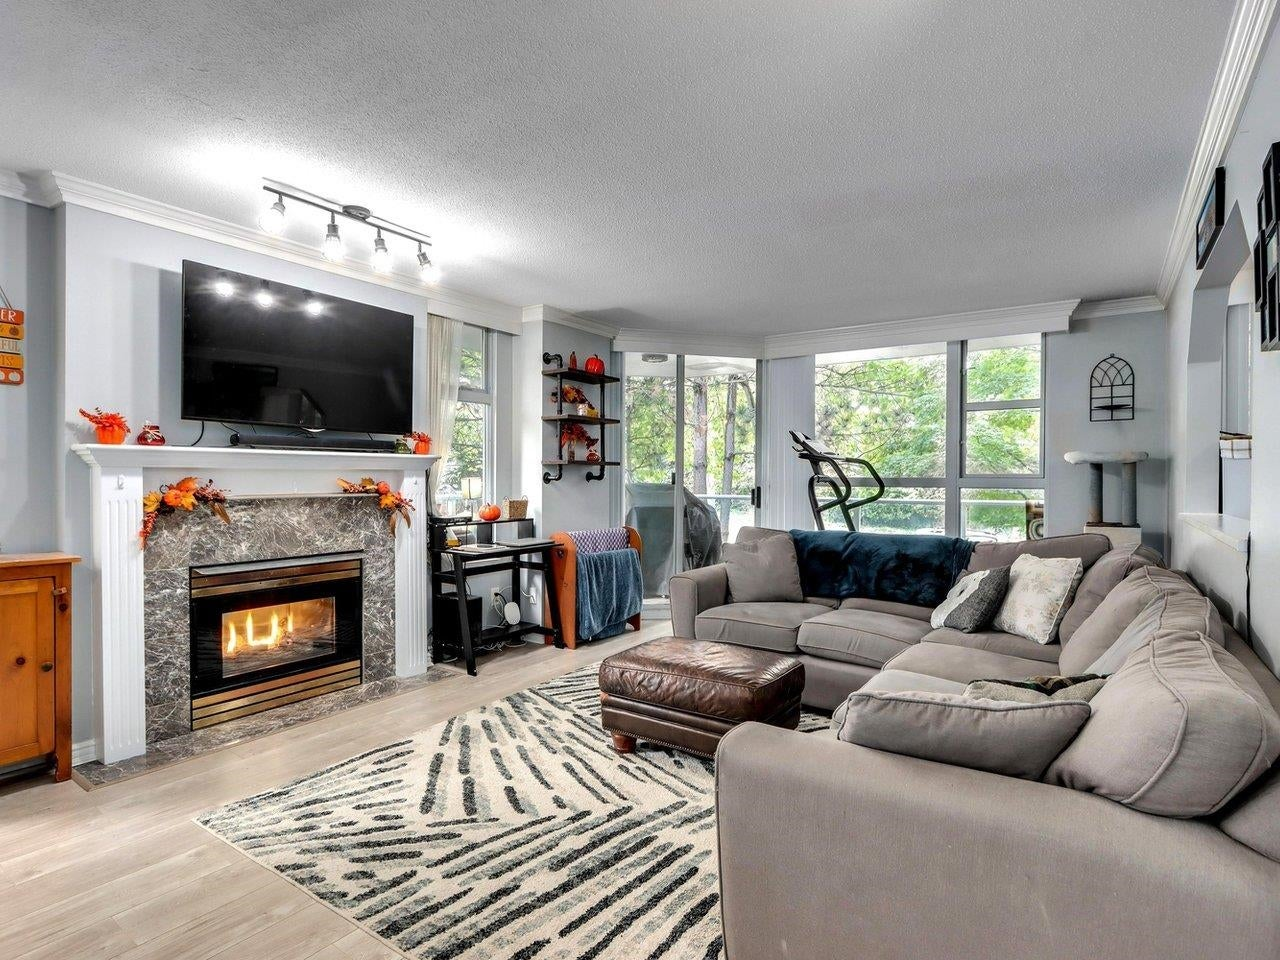 302 412 TWELFTH STREET - Uptown NW Apartment/Condo for sale, 2 Bedrooms (R2625659) - #2